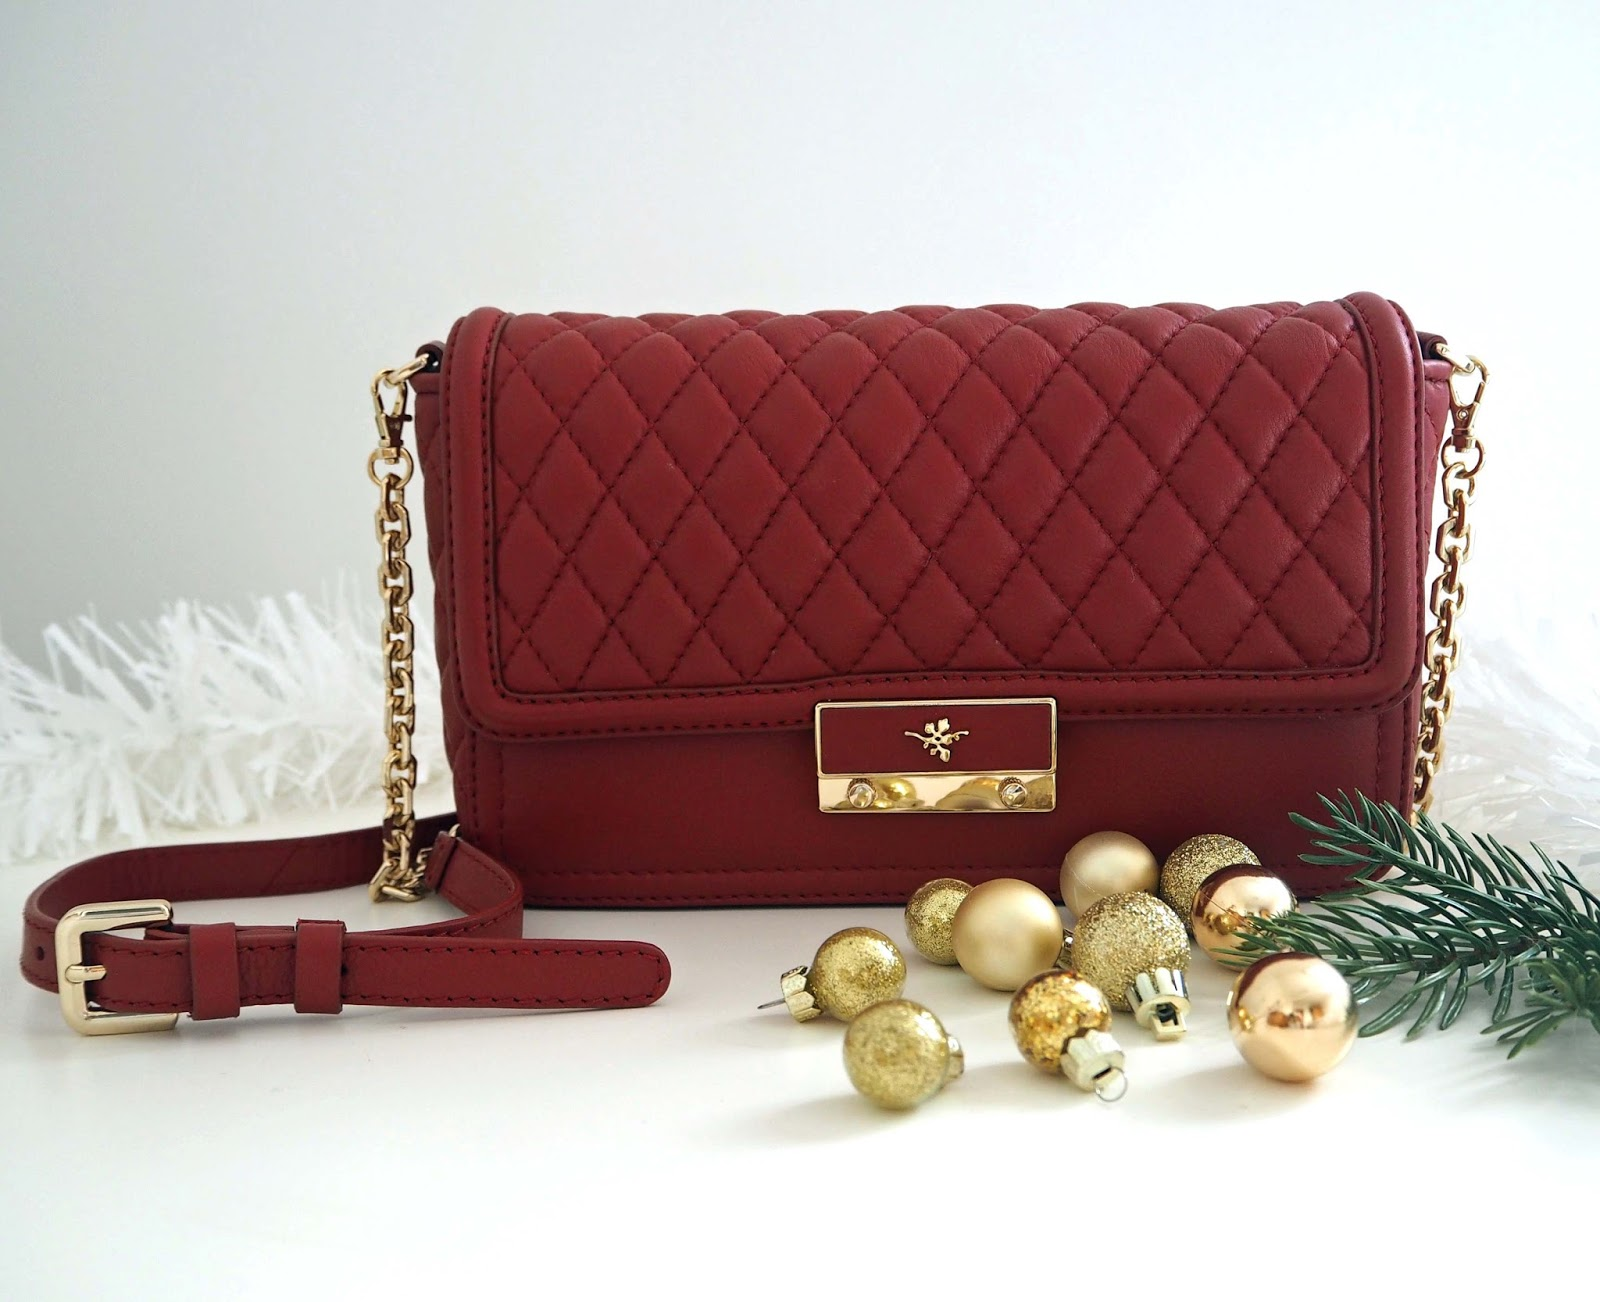 Christmas Gift Guide, IleX London Fiona red cross-body quilted evening bag with gold chain